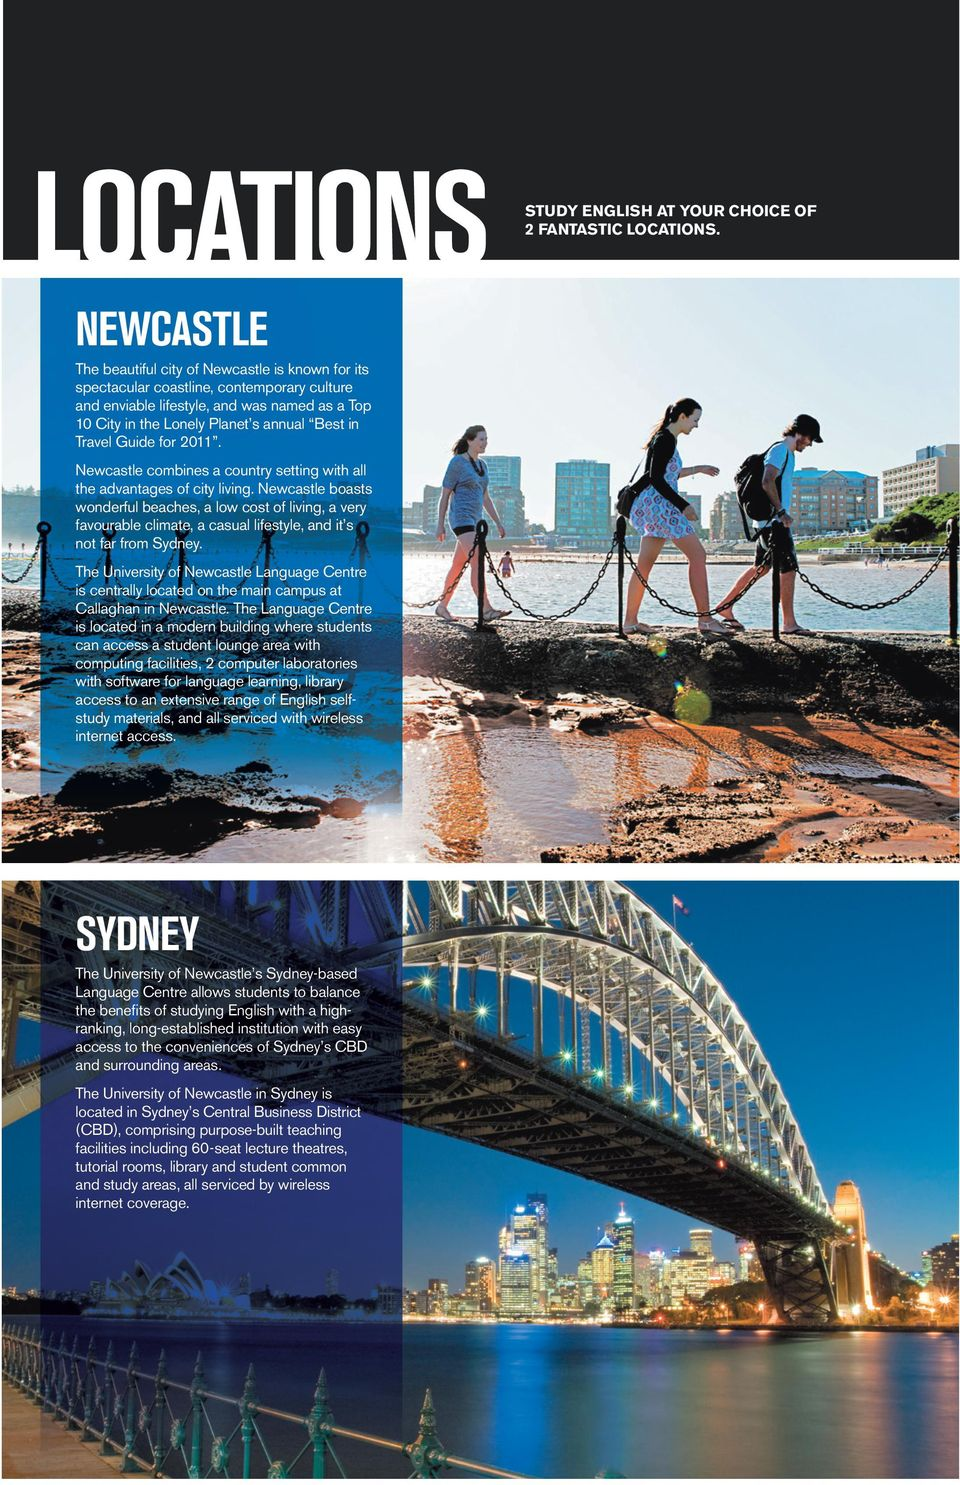 Newcastle boasts wonderful beaches, a low cost of living, a very favourable climate, a casual lifestyle, and it s not far from Sydney.